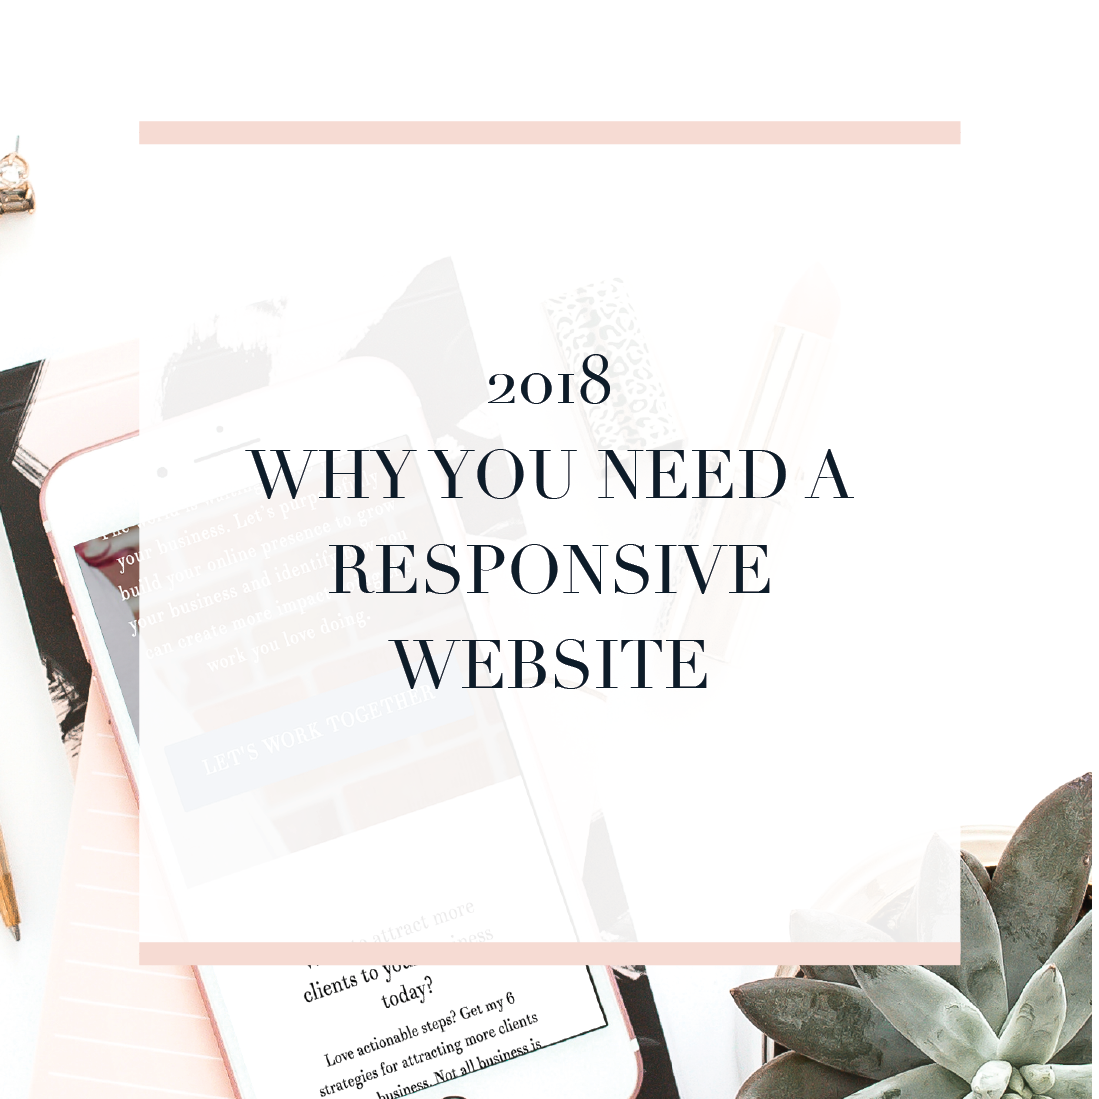 Why your business needs a responsive website in 2018